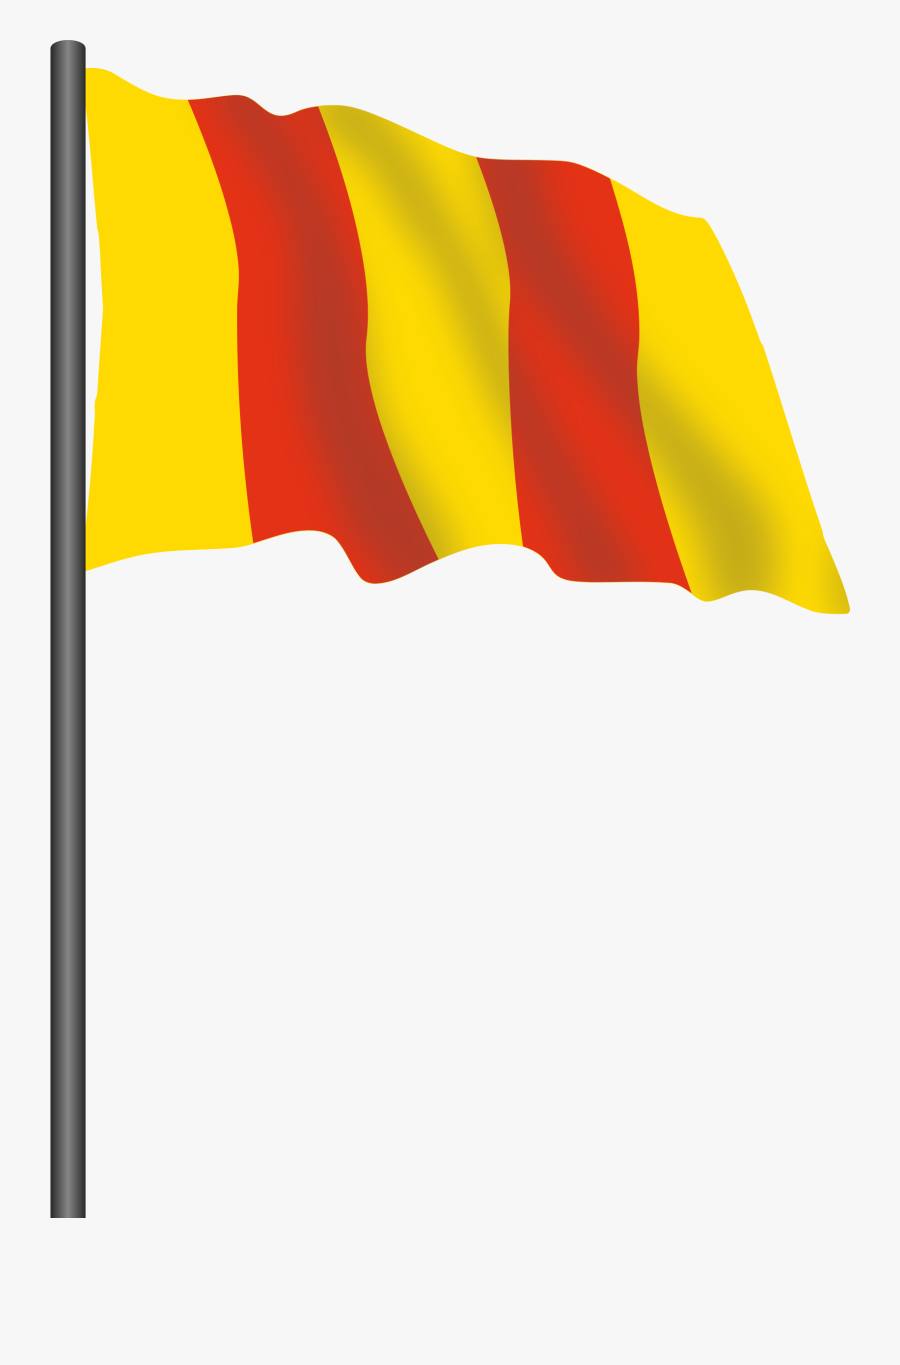 Motor Racing Flag - Red Yellow Flag Png, Transparent Clipart